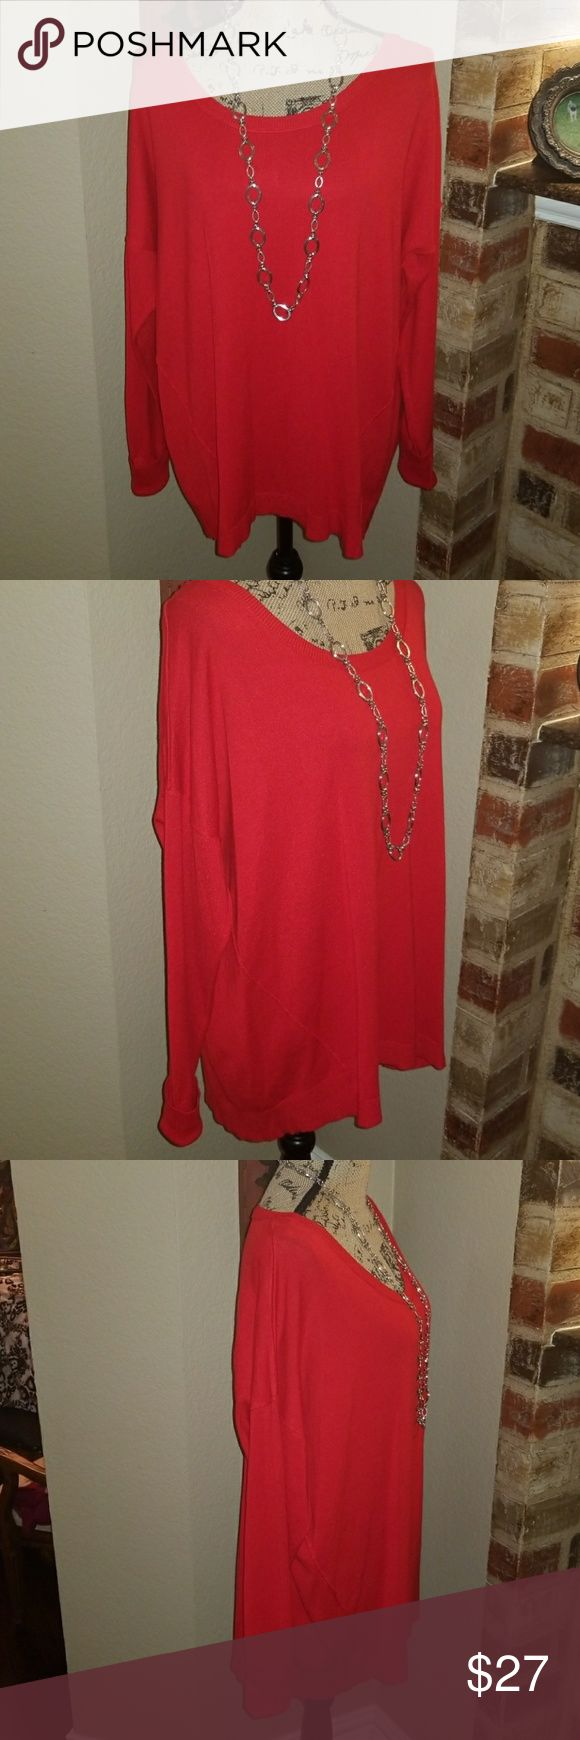 Lane Bryant Candy Apple Red Tunic. Orgas red light weight sweater tunic. So rich and made so well. It has A detail of piping trim It goes down the back and on the each front side Of the sweater for a richer look. This is a 14/16 and will look great with jeans or slacks. Brand-new with tags I am putting my fall out early so you can snatch up a great price...Material is 72% rayon with 28 % nylon. Just so luxurious! Lane Bryant Sweaters